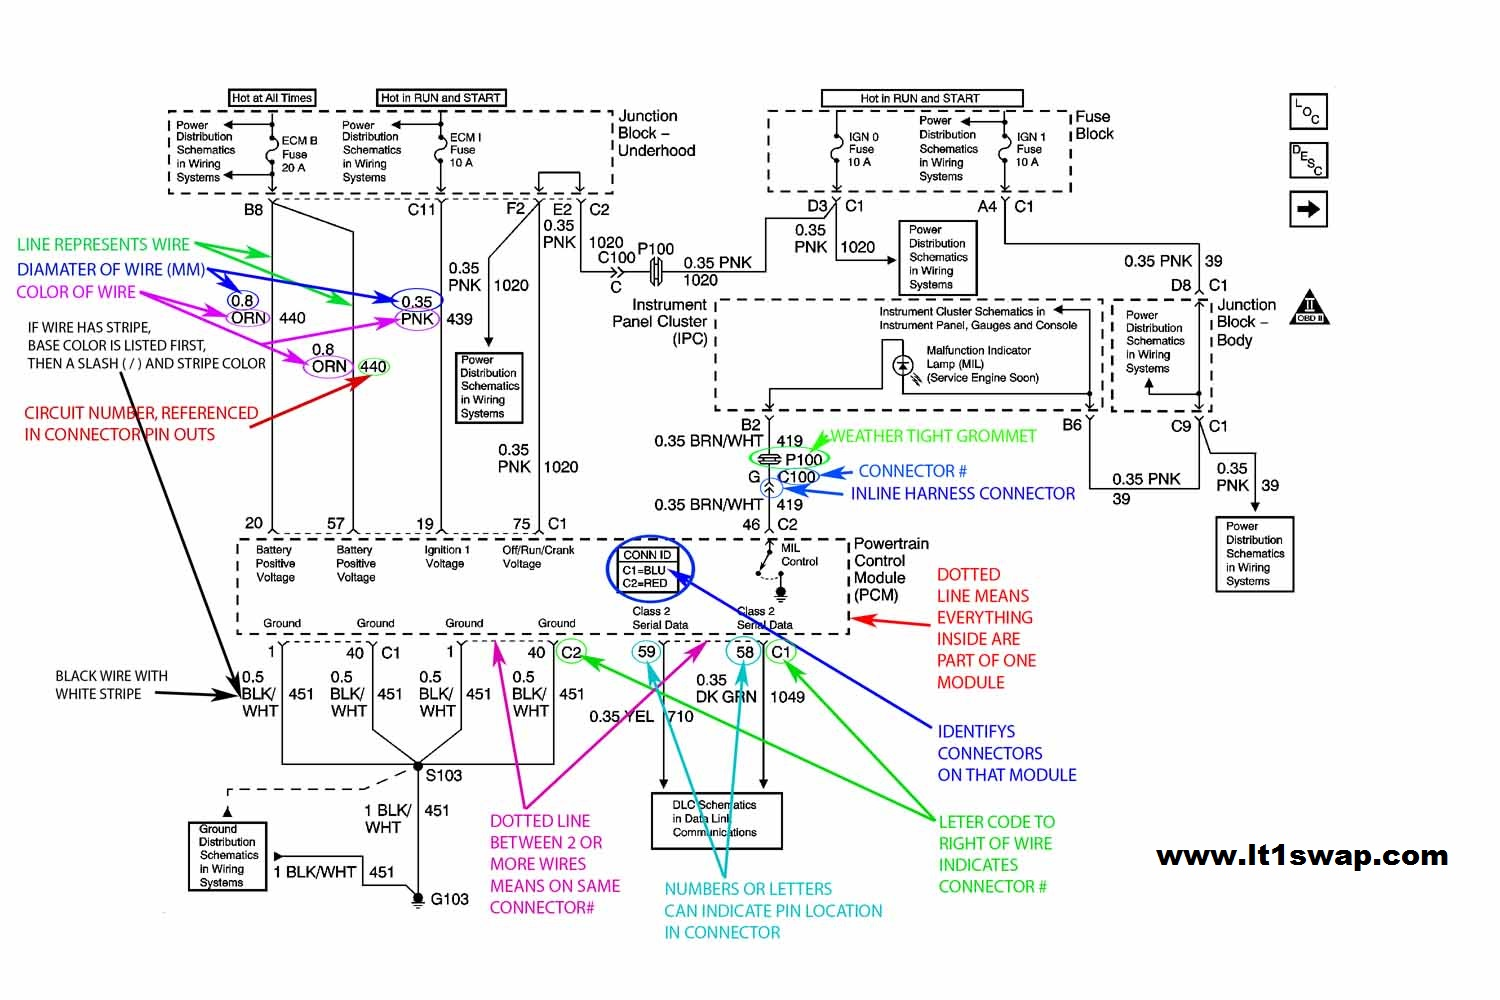 vy vz stereo wiring diagram 2002 saturn sc2 radio ls1 engine great installation of harness information rh lt1swap com swap